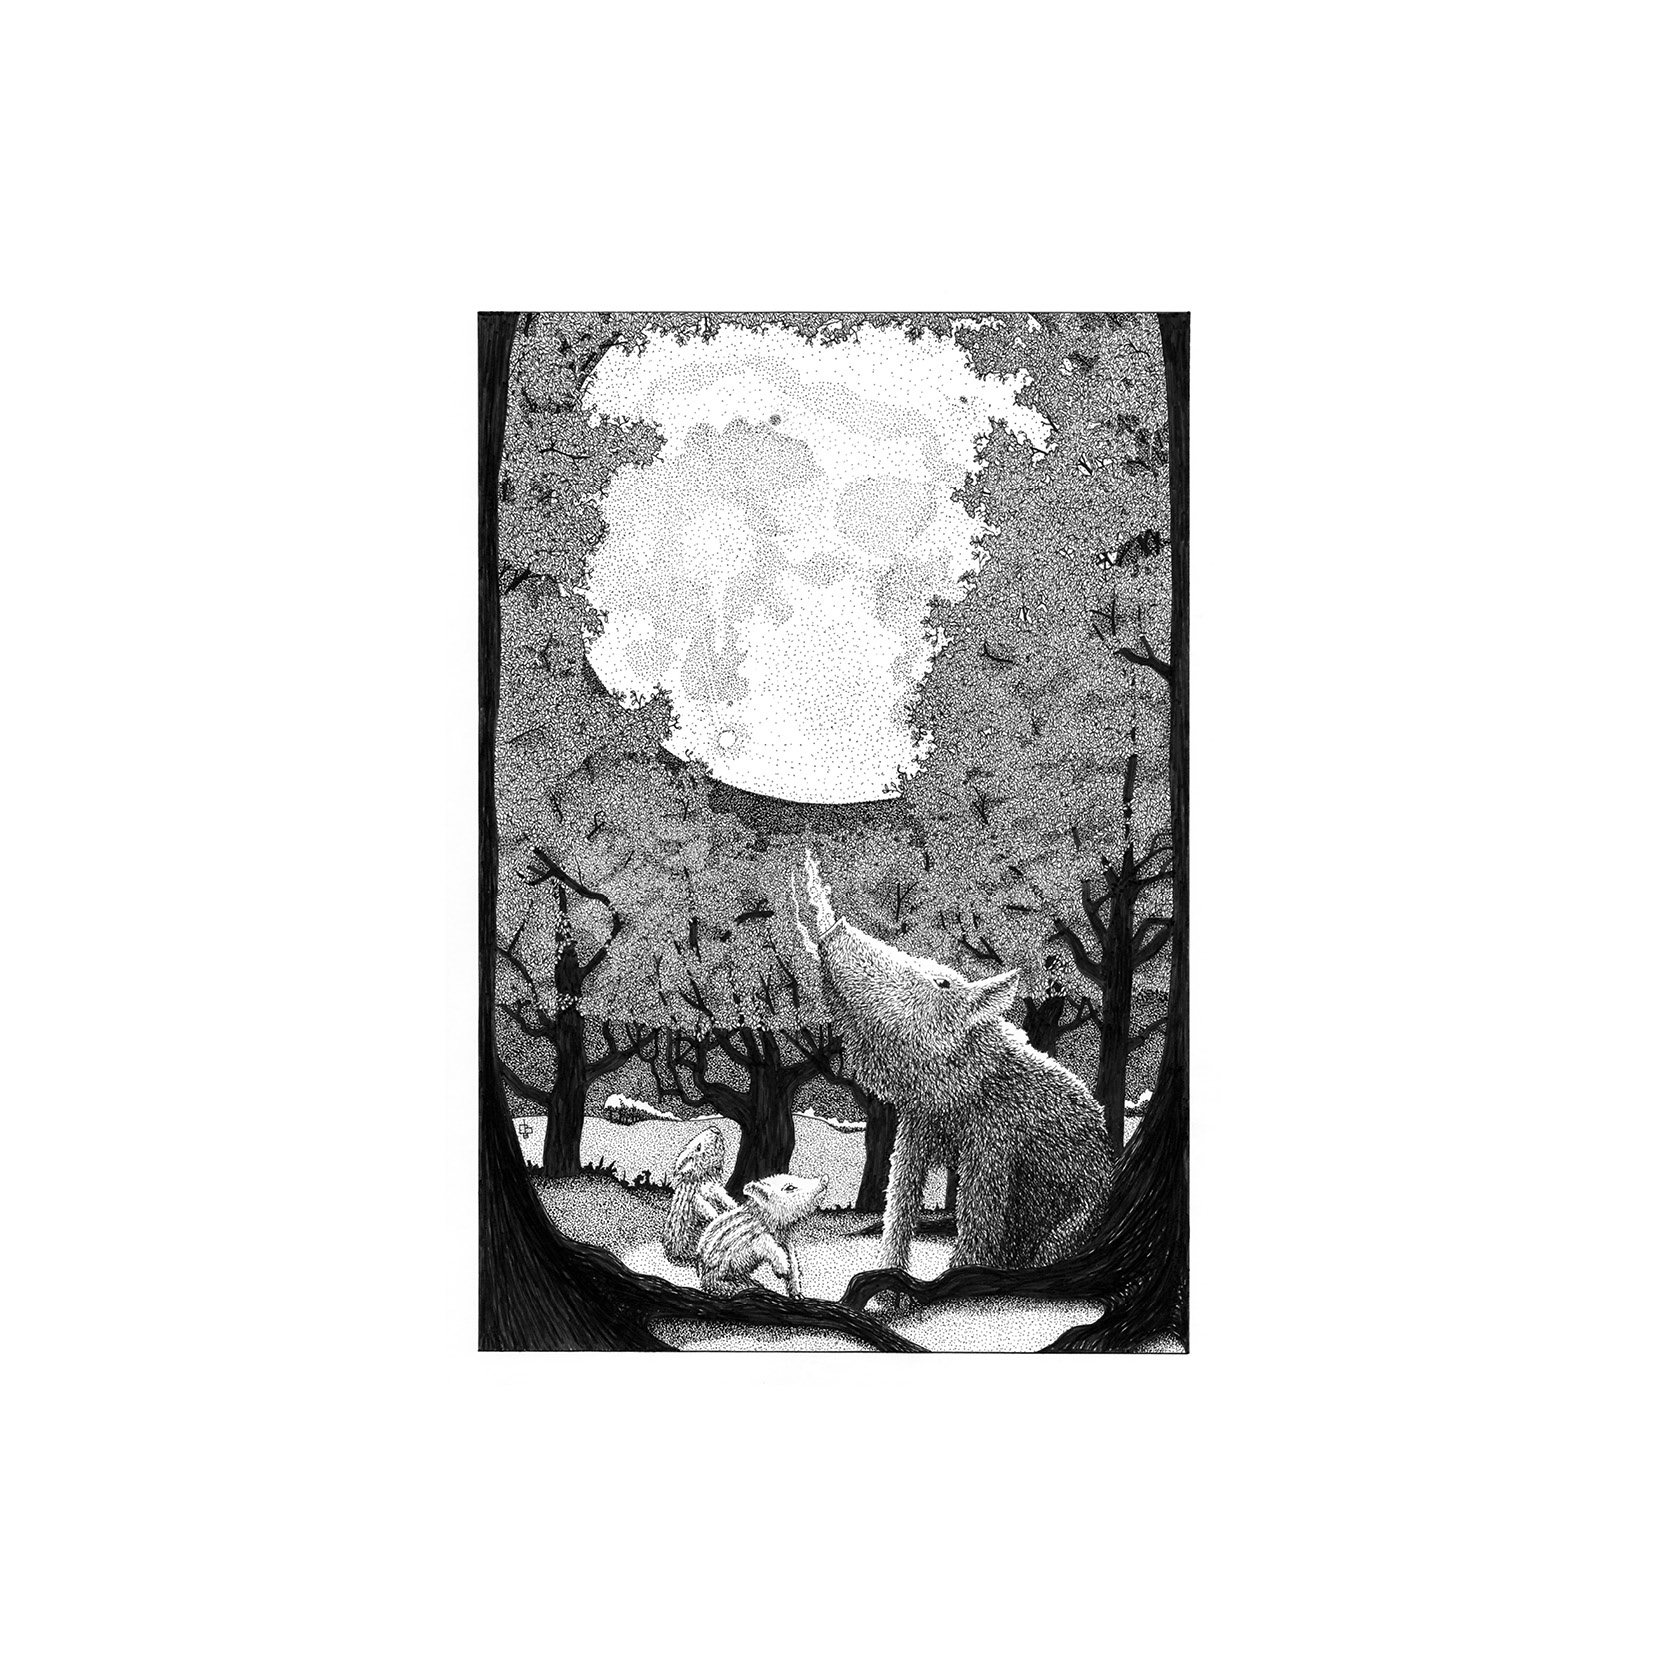 Chris Booth - The cold night print